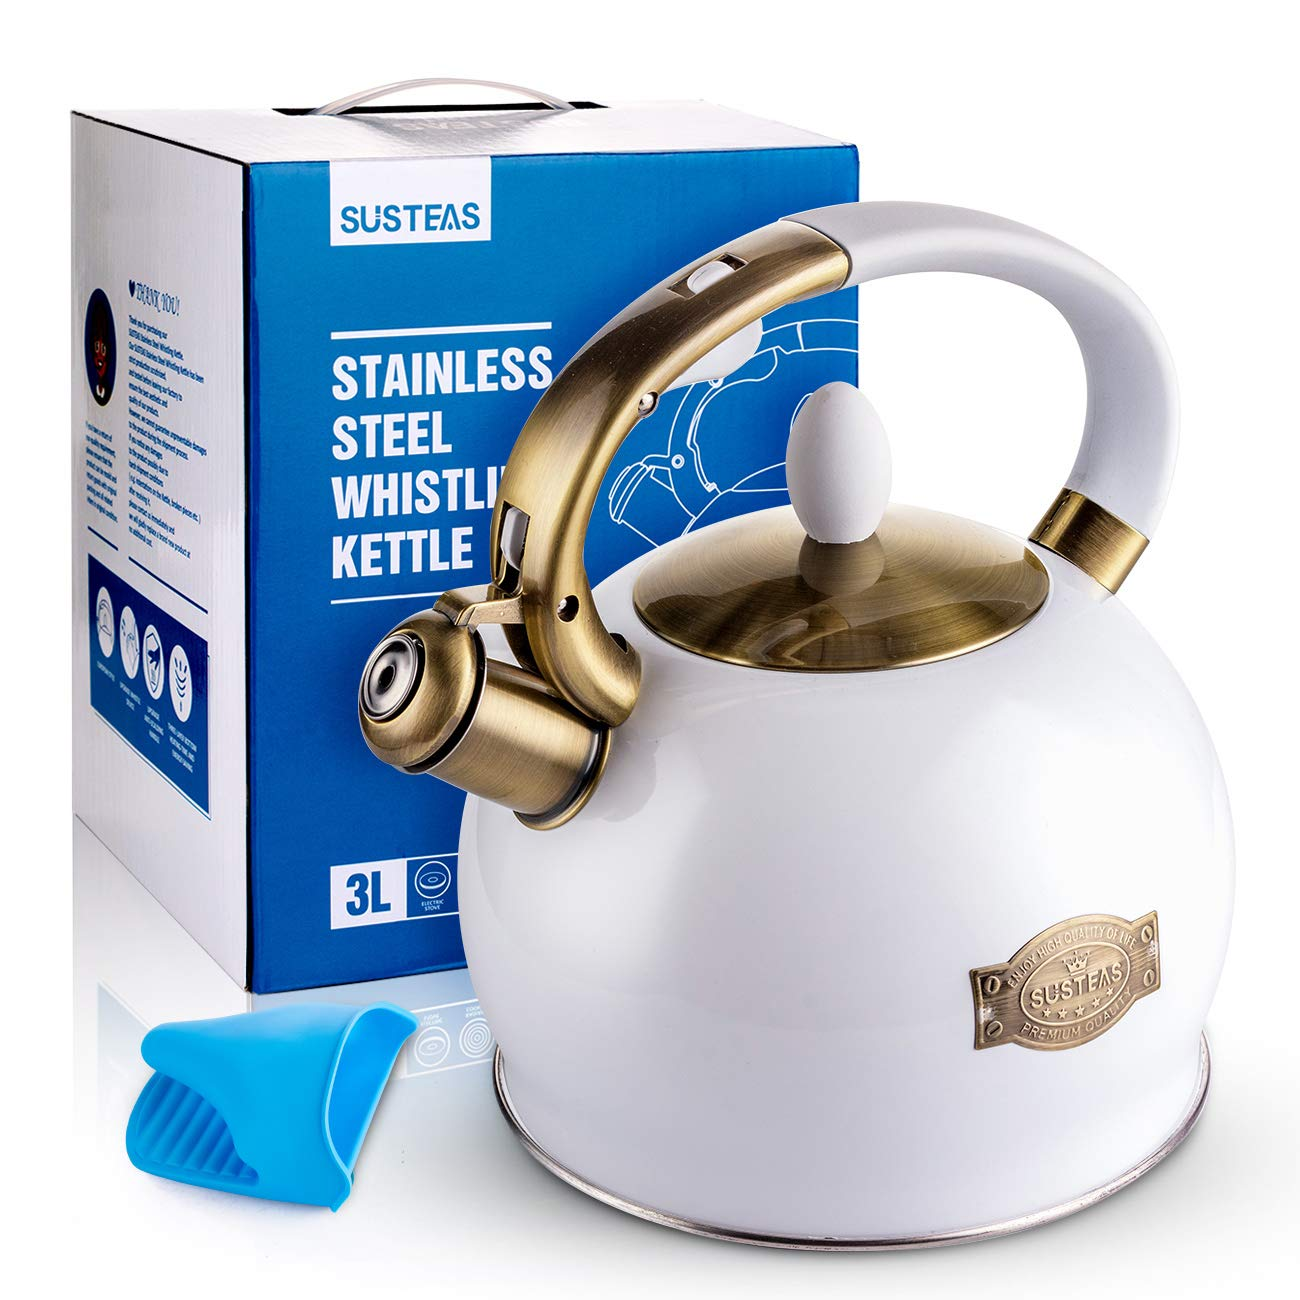 SUSTEAS Stove Top Whistling Tea Kettle-Surgical Stainless Steel Teakettle Teapot with Cool Toch Ergonomic Handle,1 Free Silicone Pinch Mitt Included,2.64 Quart White